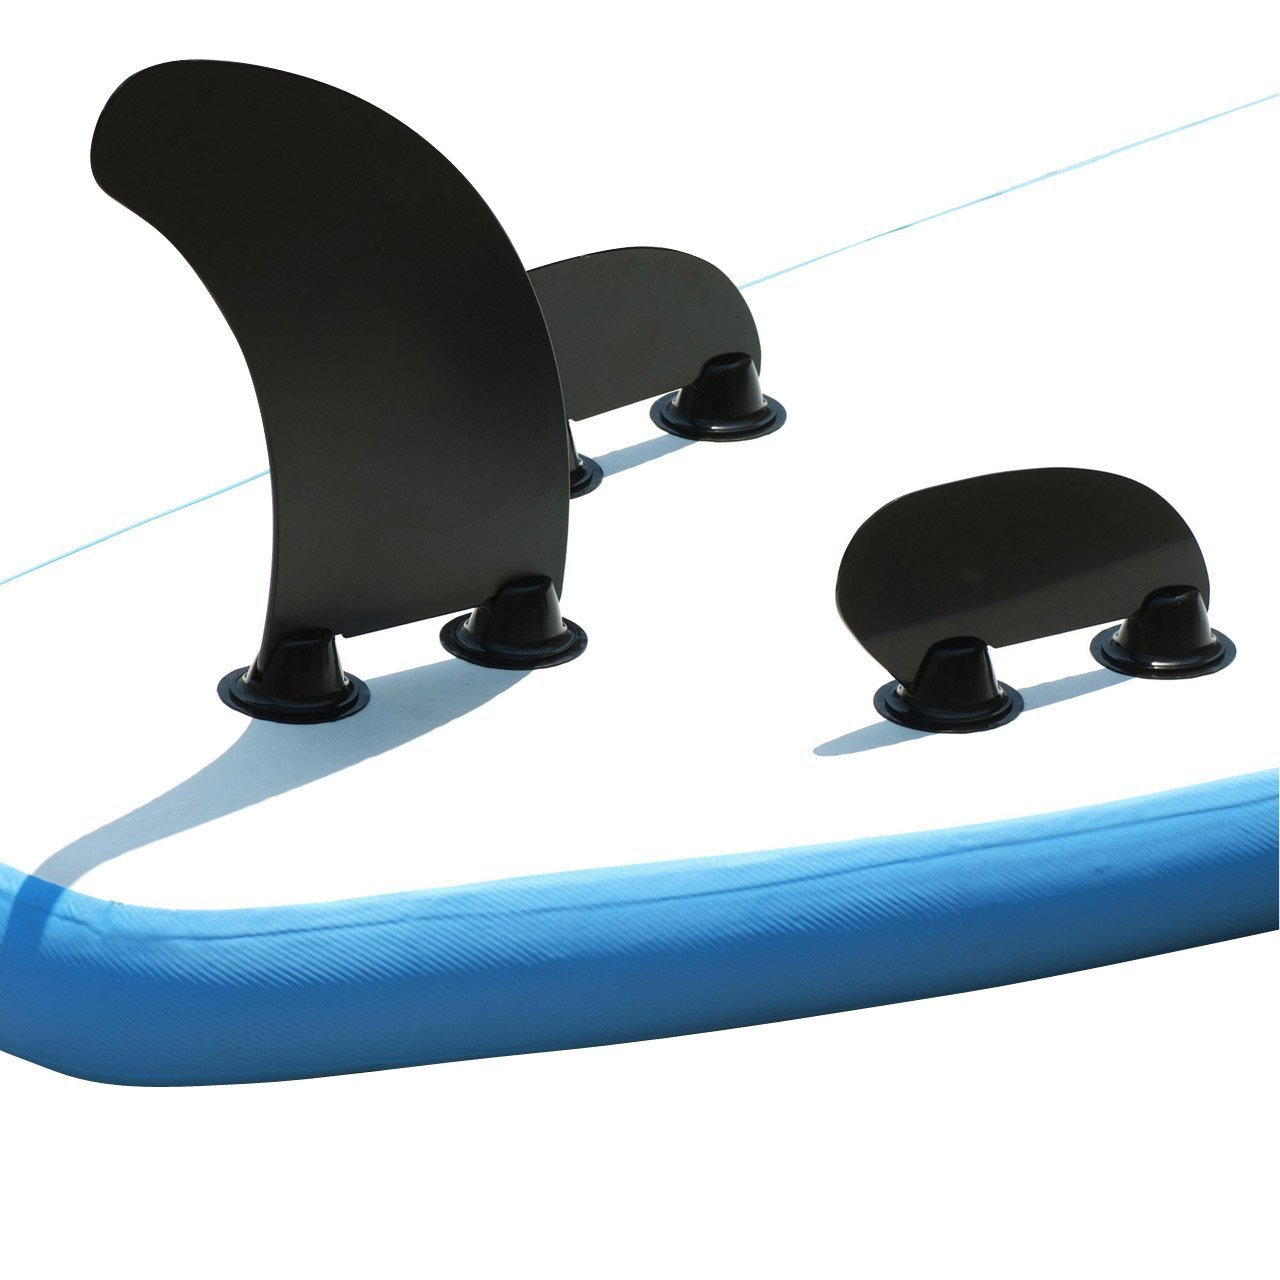 Intex spk 2 stand up paddle board pools kayak for Stand up pool